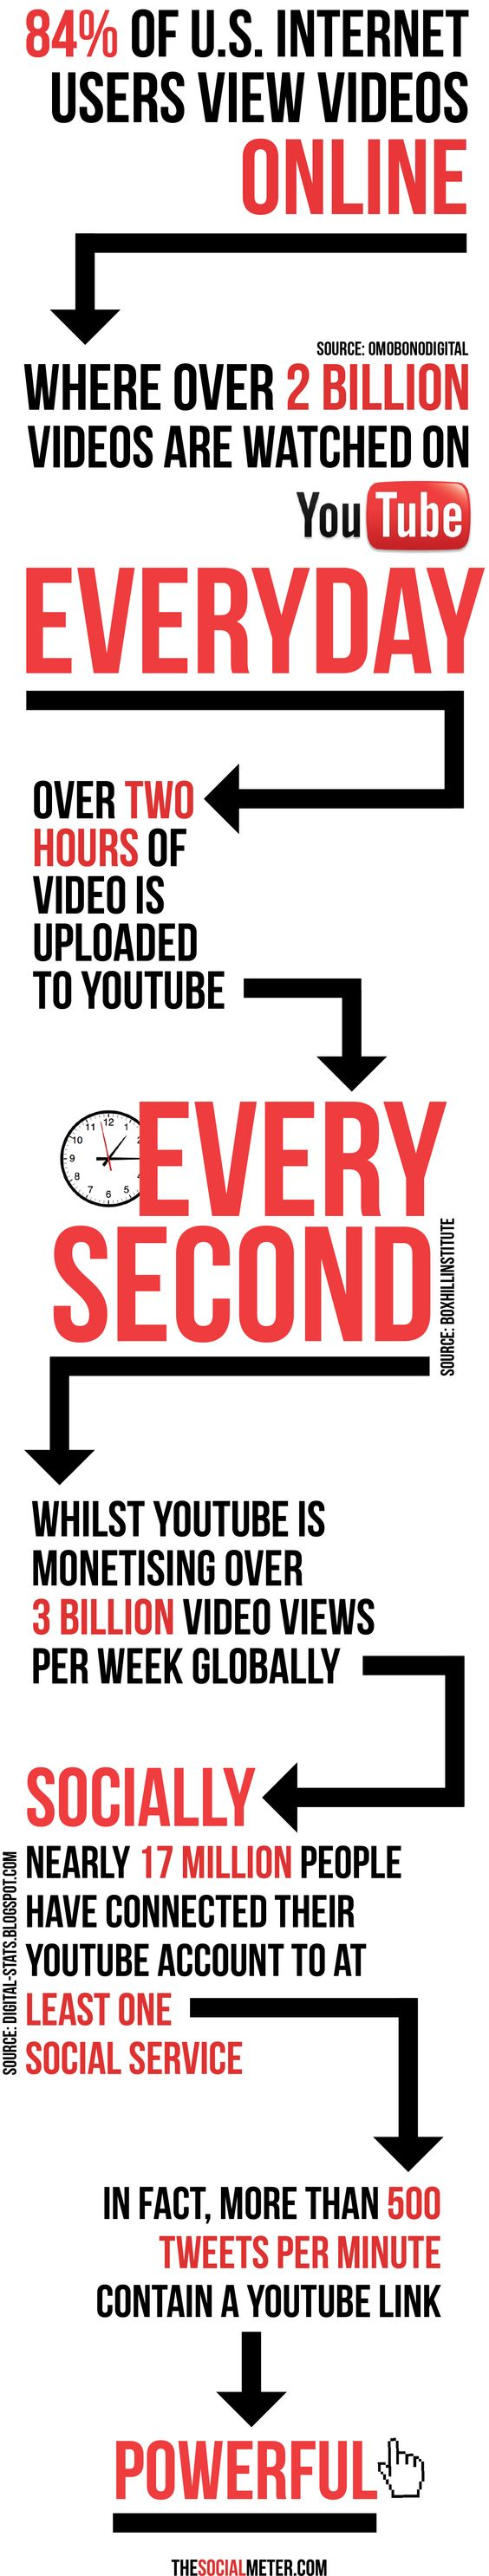 The power of Youtube.